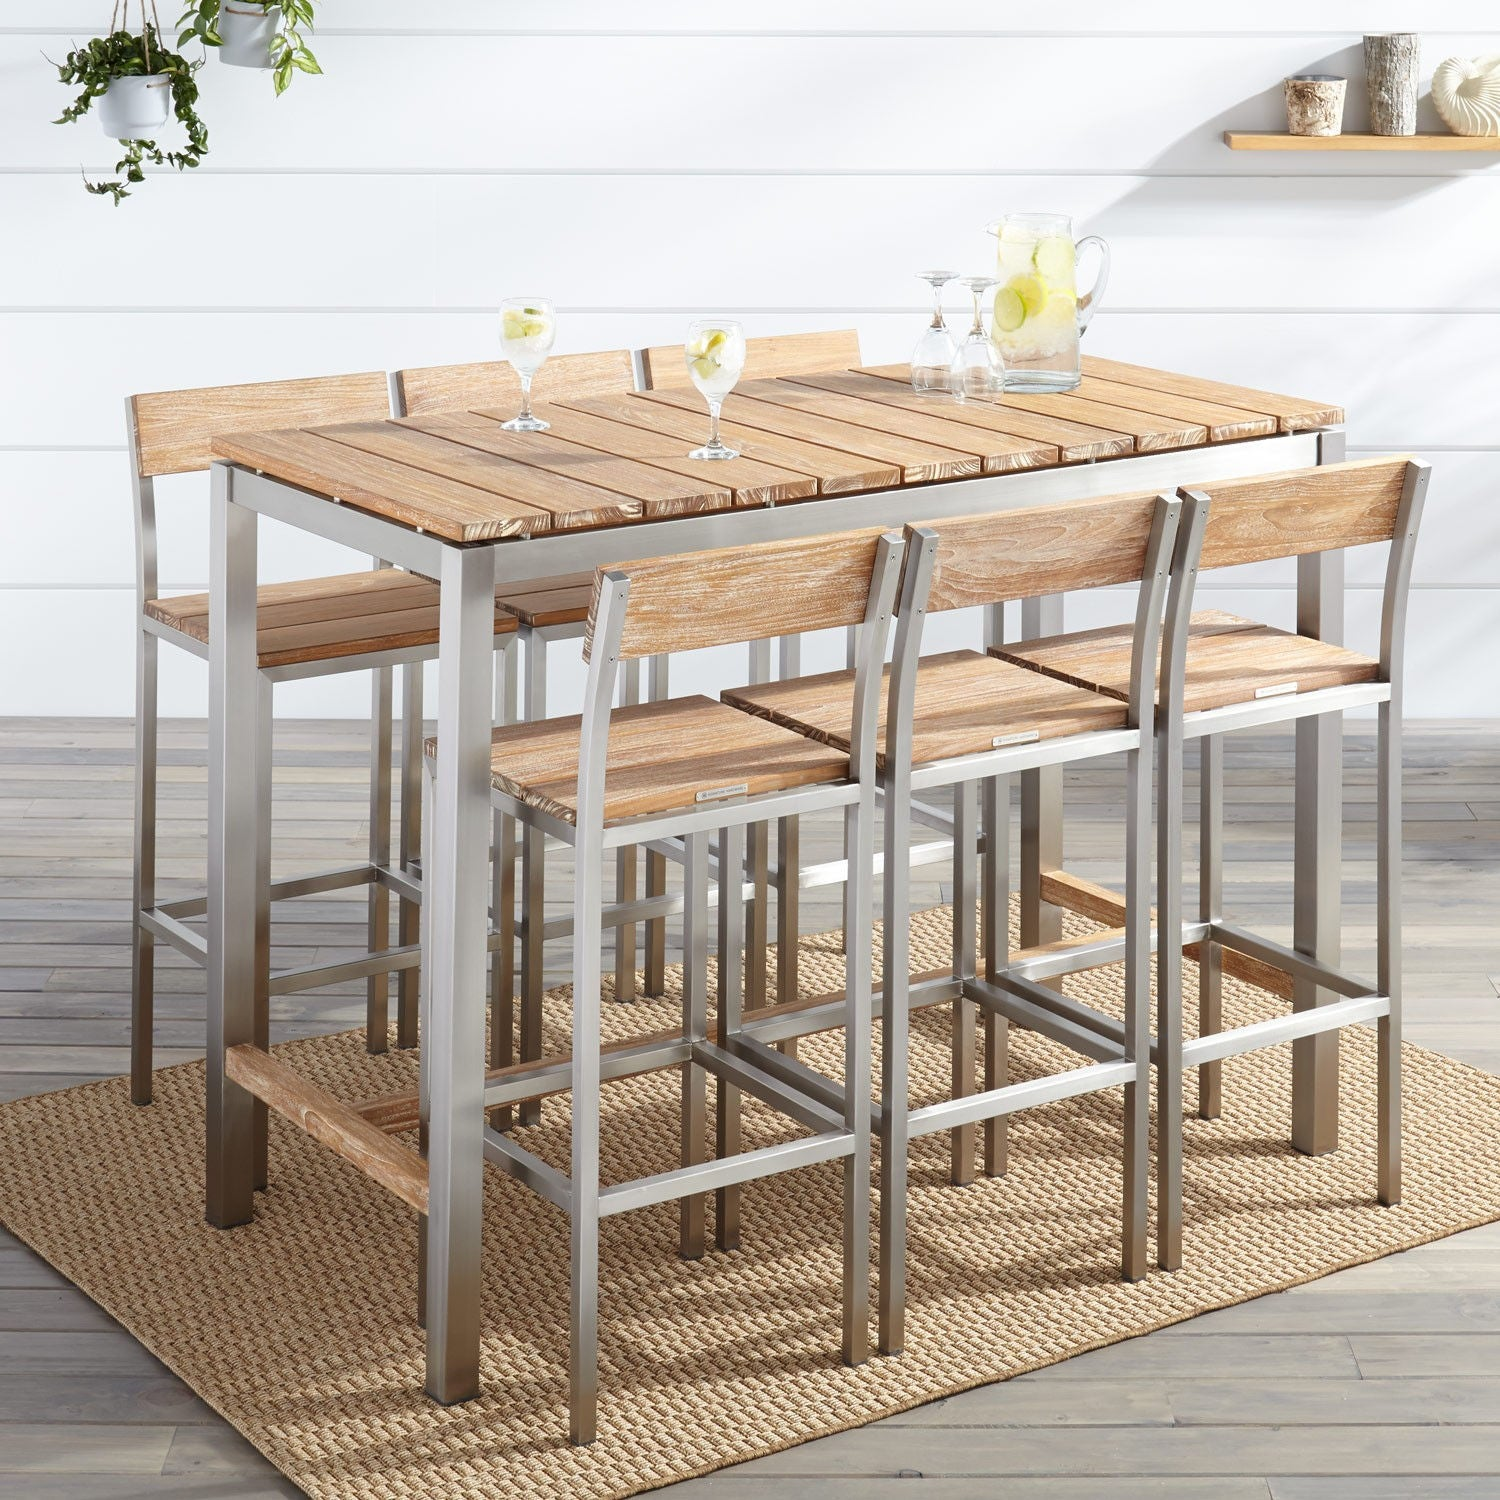 Outdoor Wood & Steel Bar Chair & Table Set